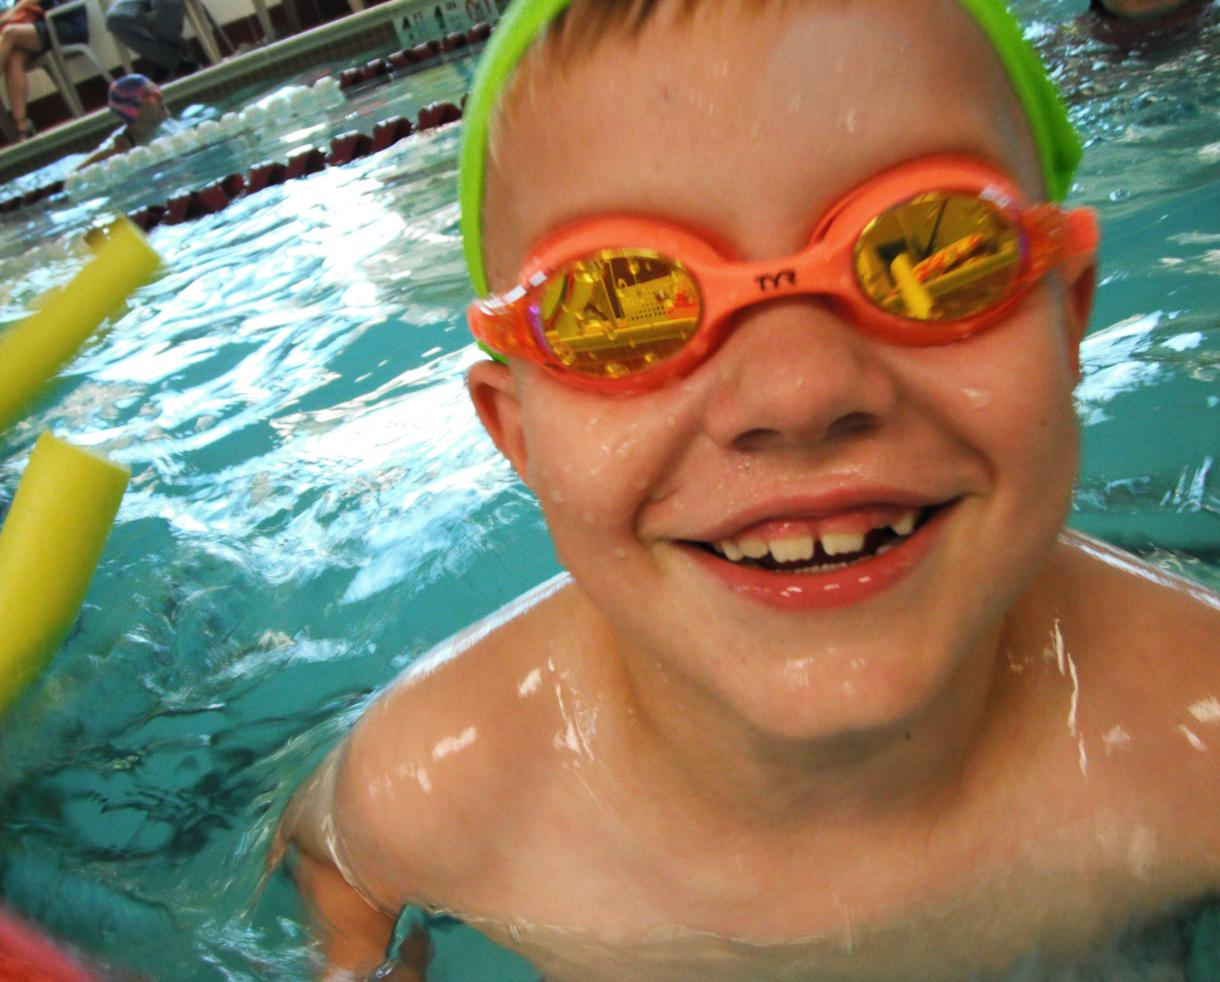 $59 for One Month of Group Swimming Lessons - Includes Registration Fee (Rockville & Gaithersburg locations) (47% off - $111 value)